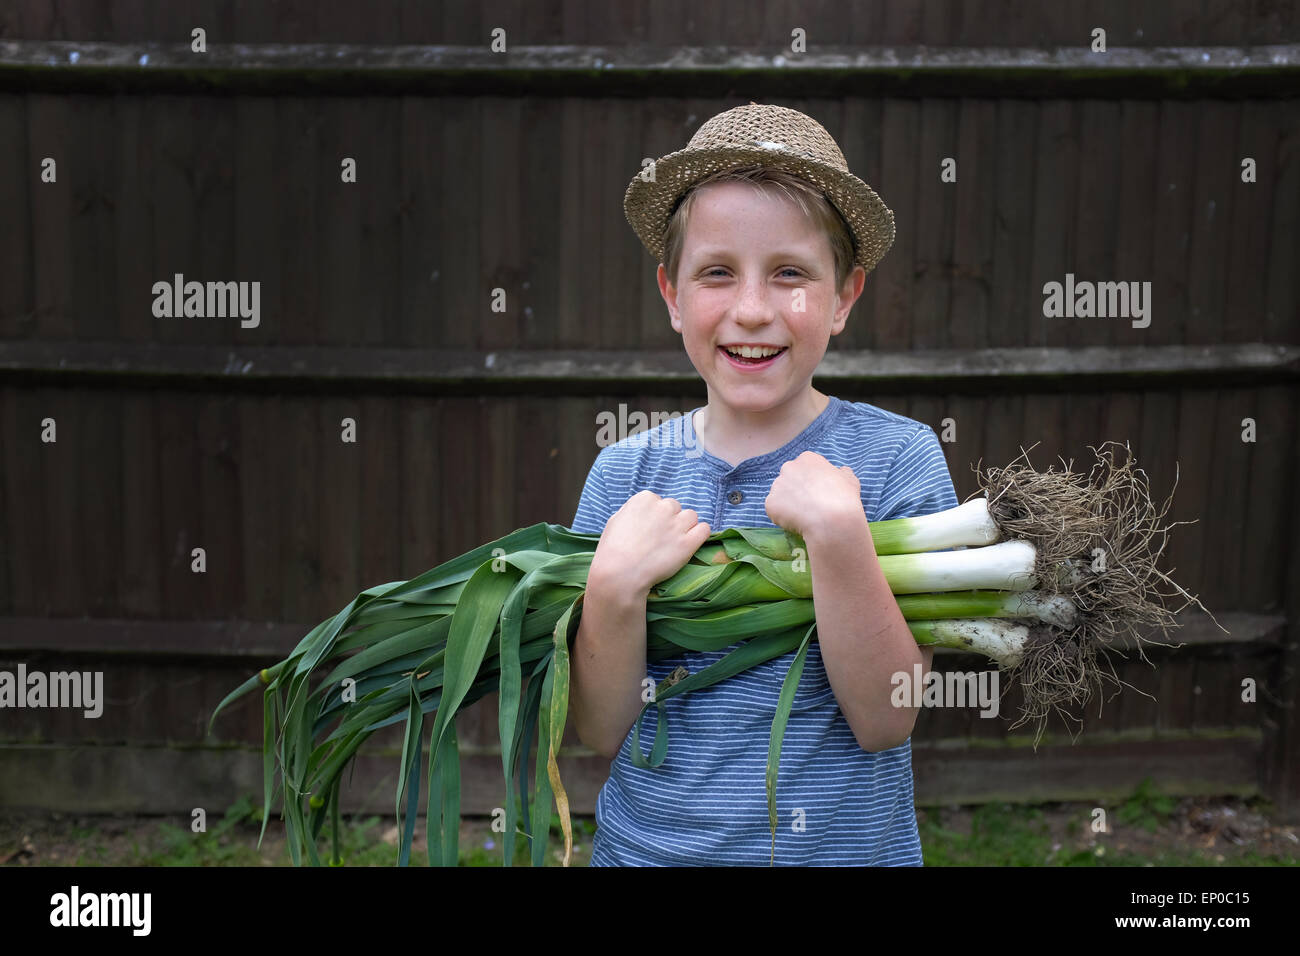 A happy boy with fresh grown organic leeks picked from the garden - Stock Image